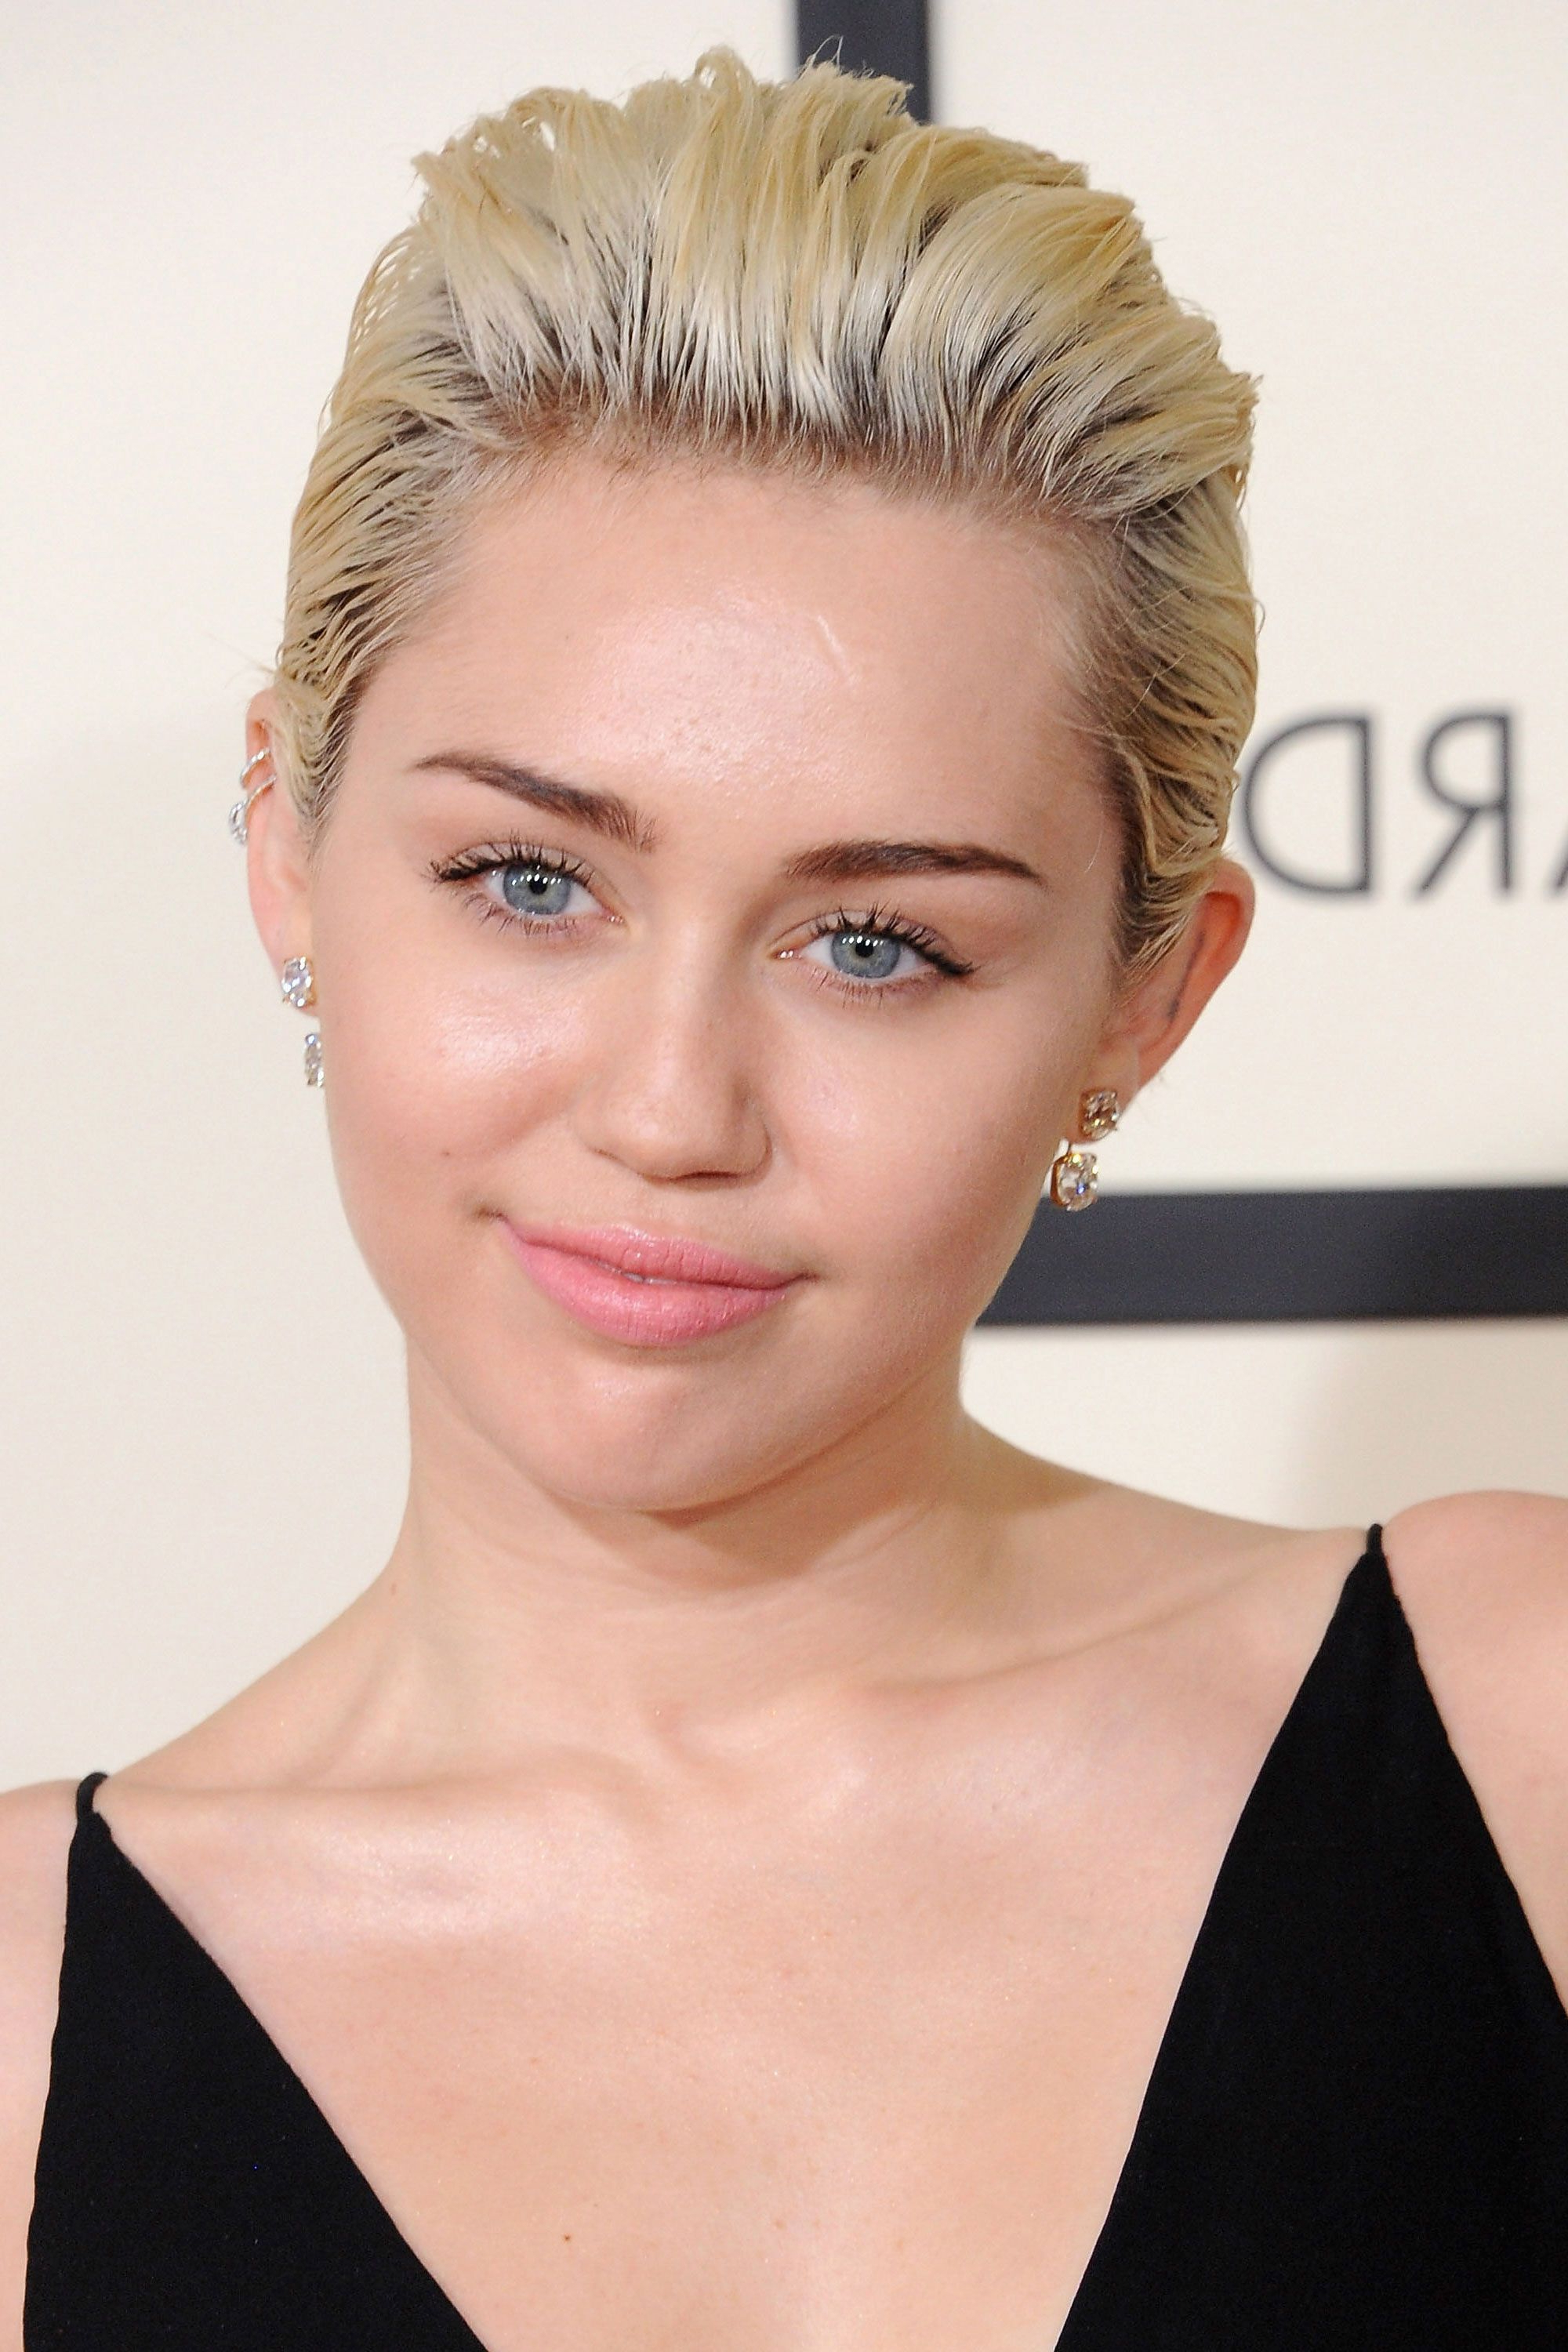 87 Cute Short Hairstyles & Haircuts - How To Style Short Hair intended for Short Haircuts Like Miley Cyrus